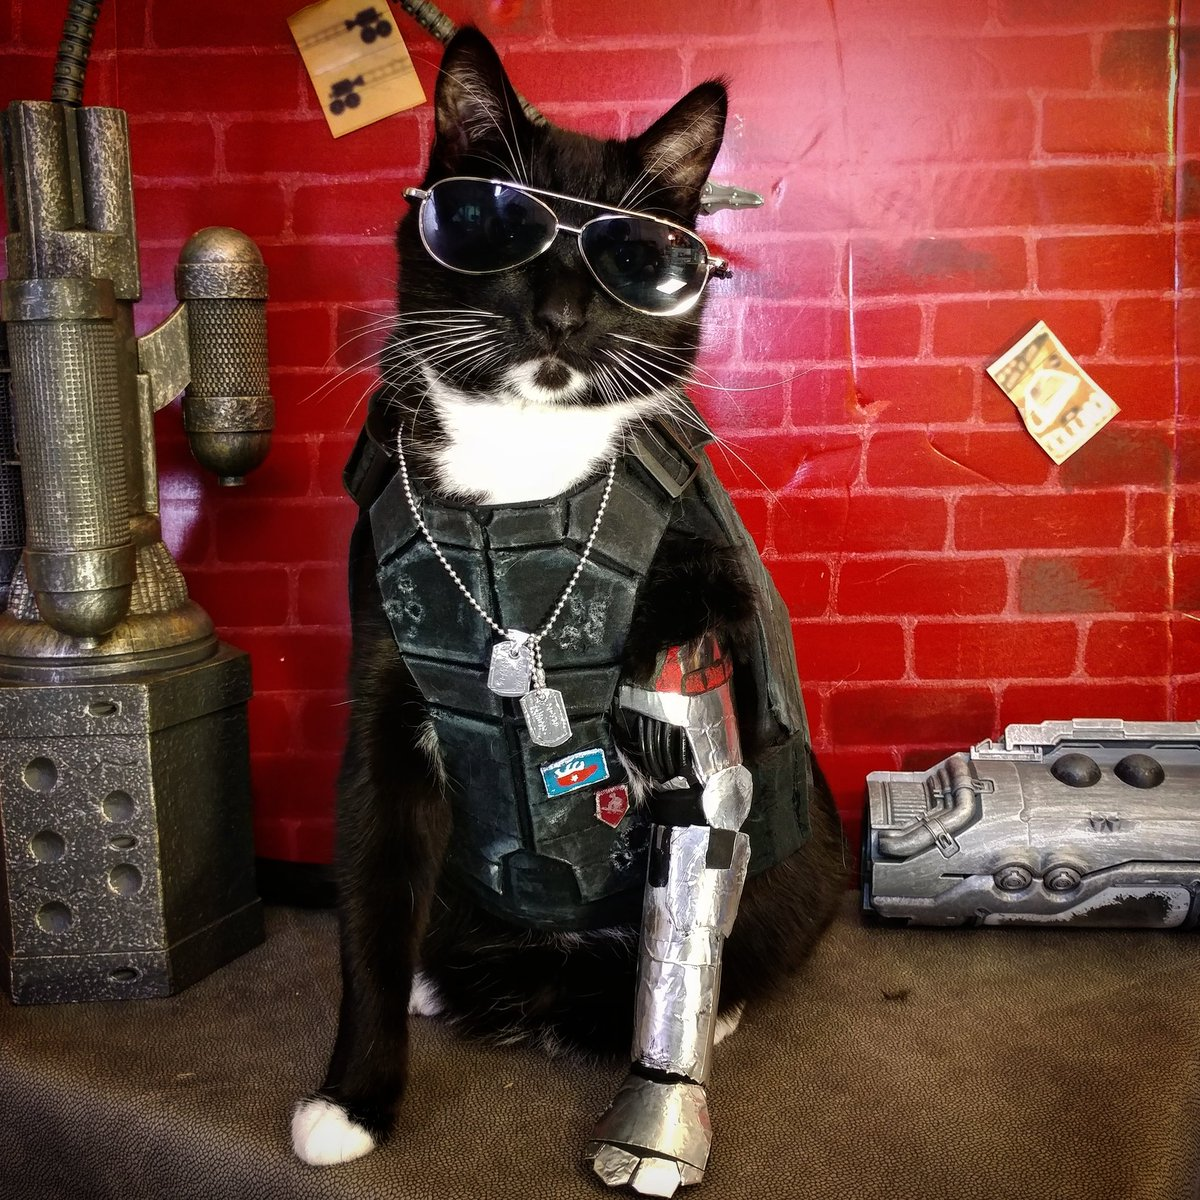 "Cat Cosplay on Twitter: """"Wake the fark up, Samurai. We've got a ..."